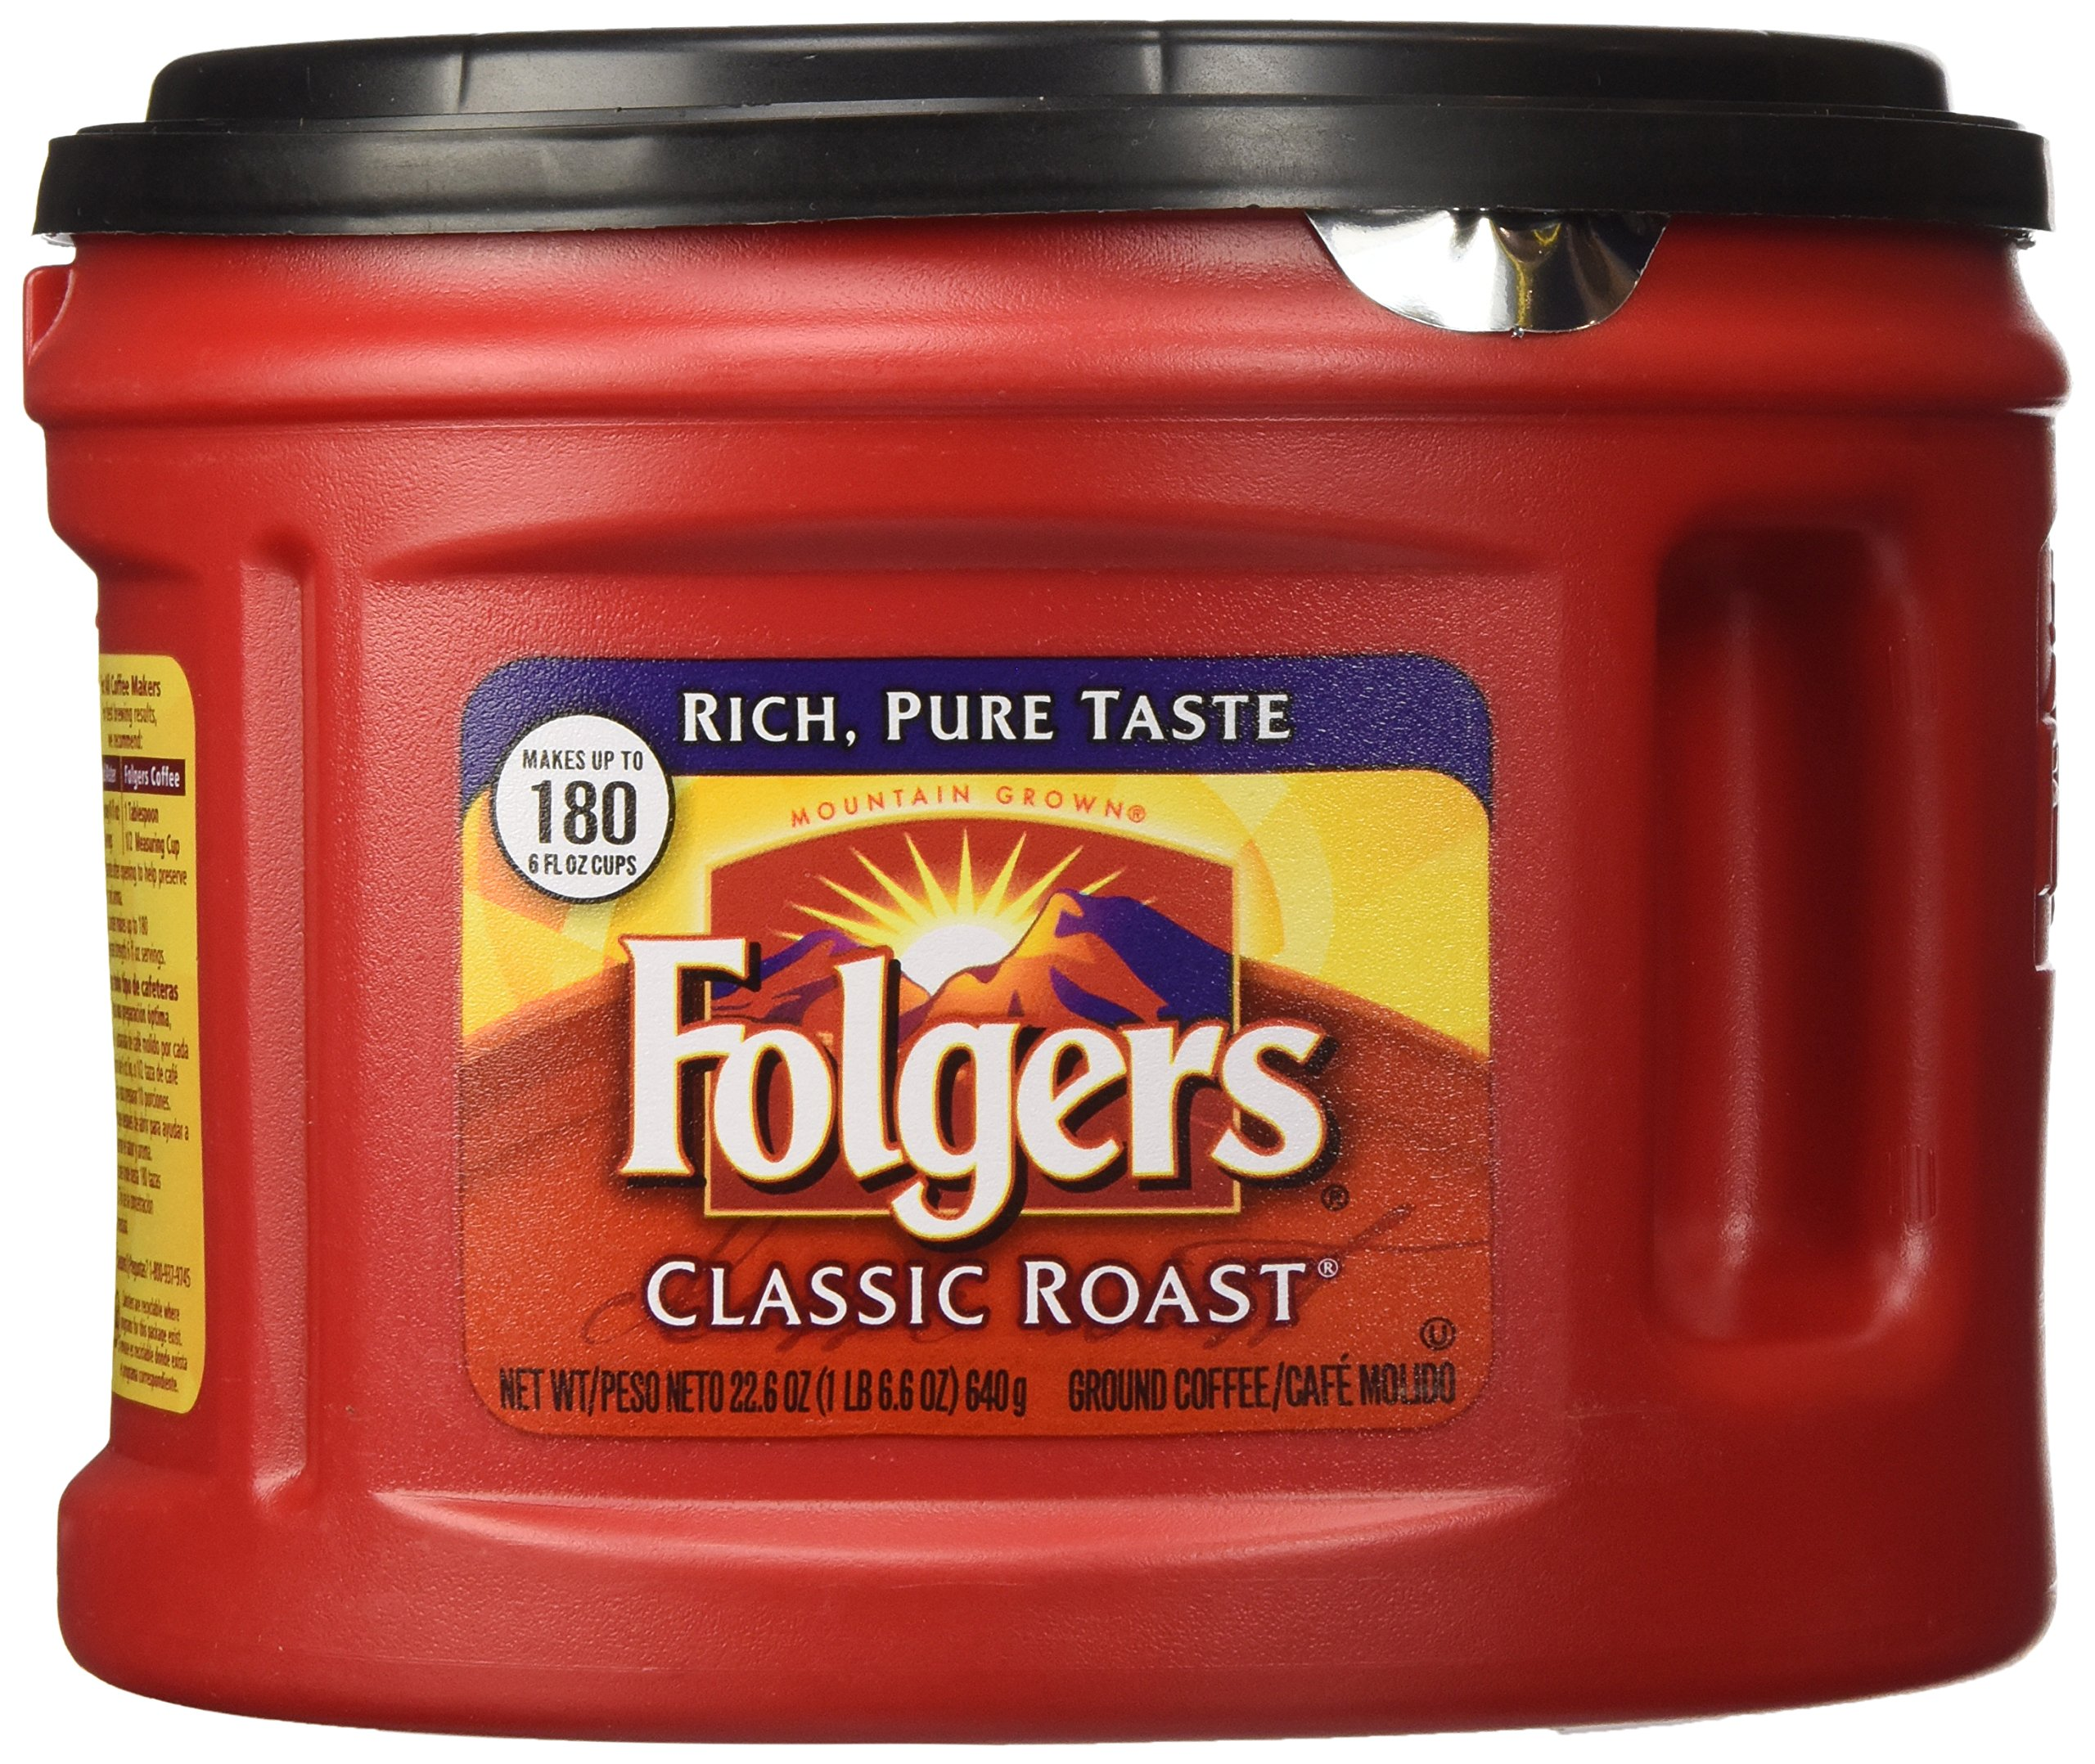 Folgers Classic Roast Ground Coffee, 22.6-Ounce (Pack of 3) by Folgers